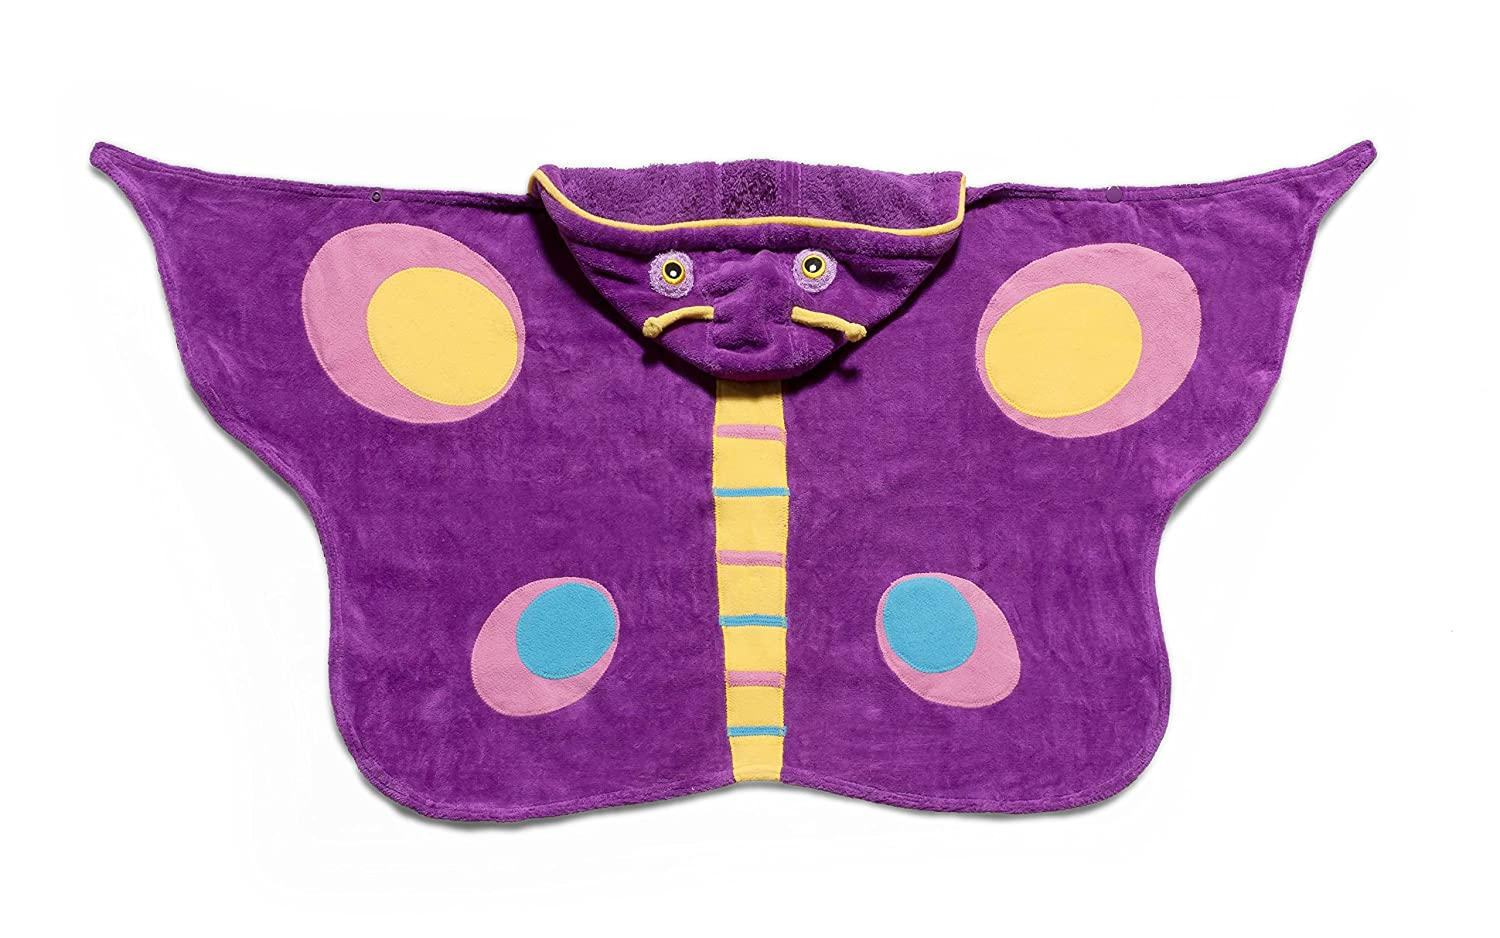 Kidorable Purple Butterfly All-Cotton Hooded Towel for Girls with Fun Eyes and Antennae, Ages 3-7